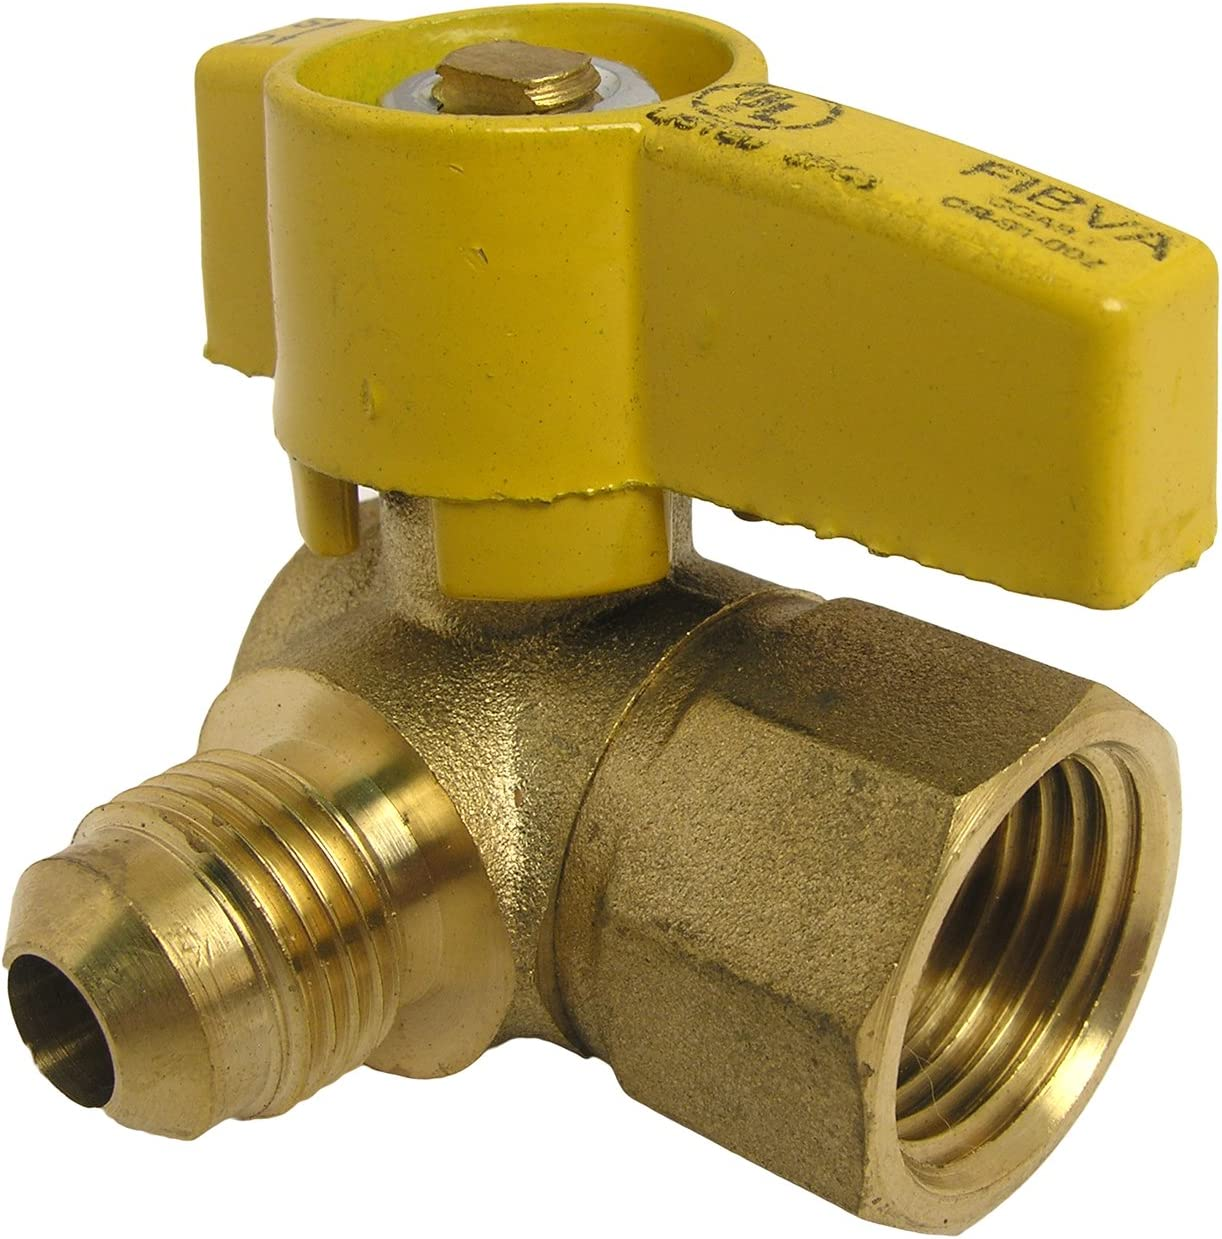 LASCO 10-1615 Angle Limited time cheap sale Gas Ball Valve with Max 48% OFF 1 and Flare 3 2-I 8-Inch